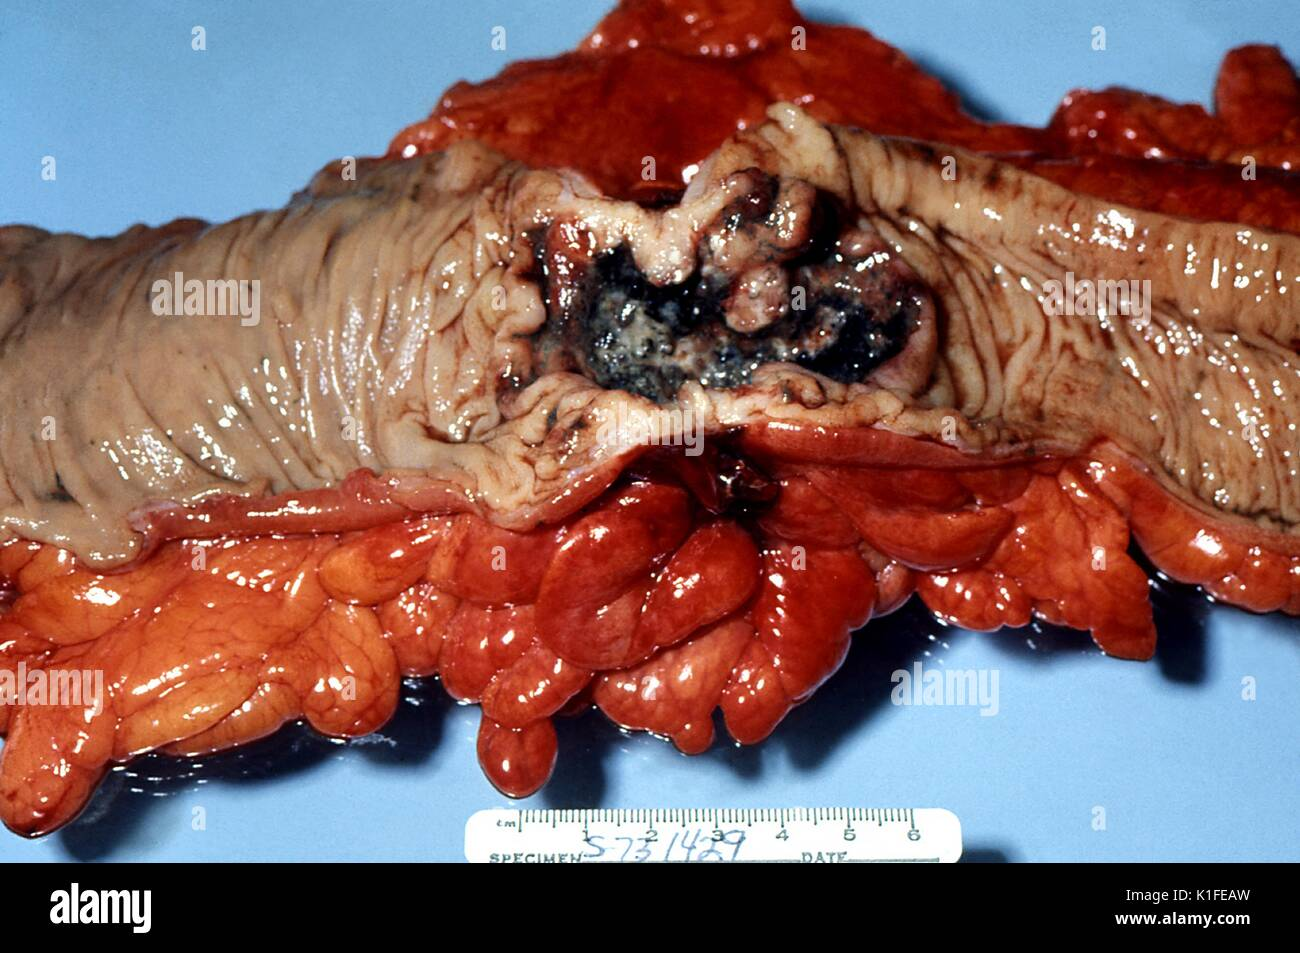 Under gross pathologic examination, this ulcerated adenocarcinomatous lesion of the colon was revealed. Ulcerated, endophytic adenocarcinoma of colon. Surgical specimen. Image courtesy CDC/Dr. Edwin P. Ewing, Jr., 1973. - Stock Image